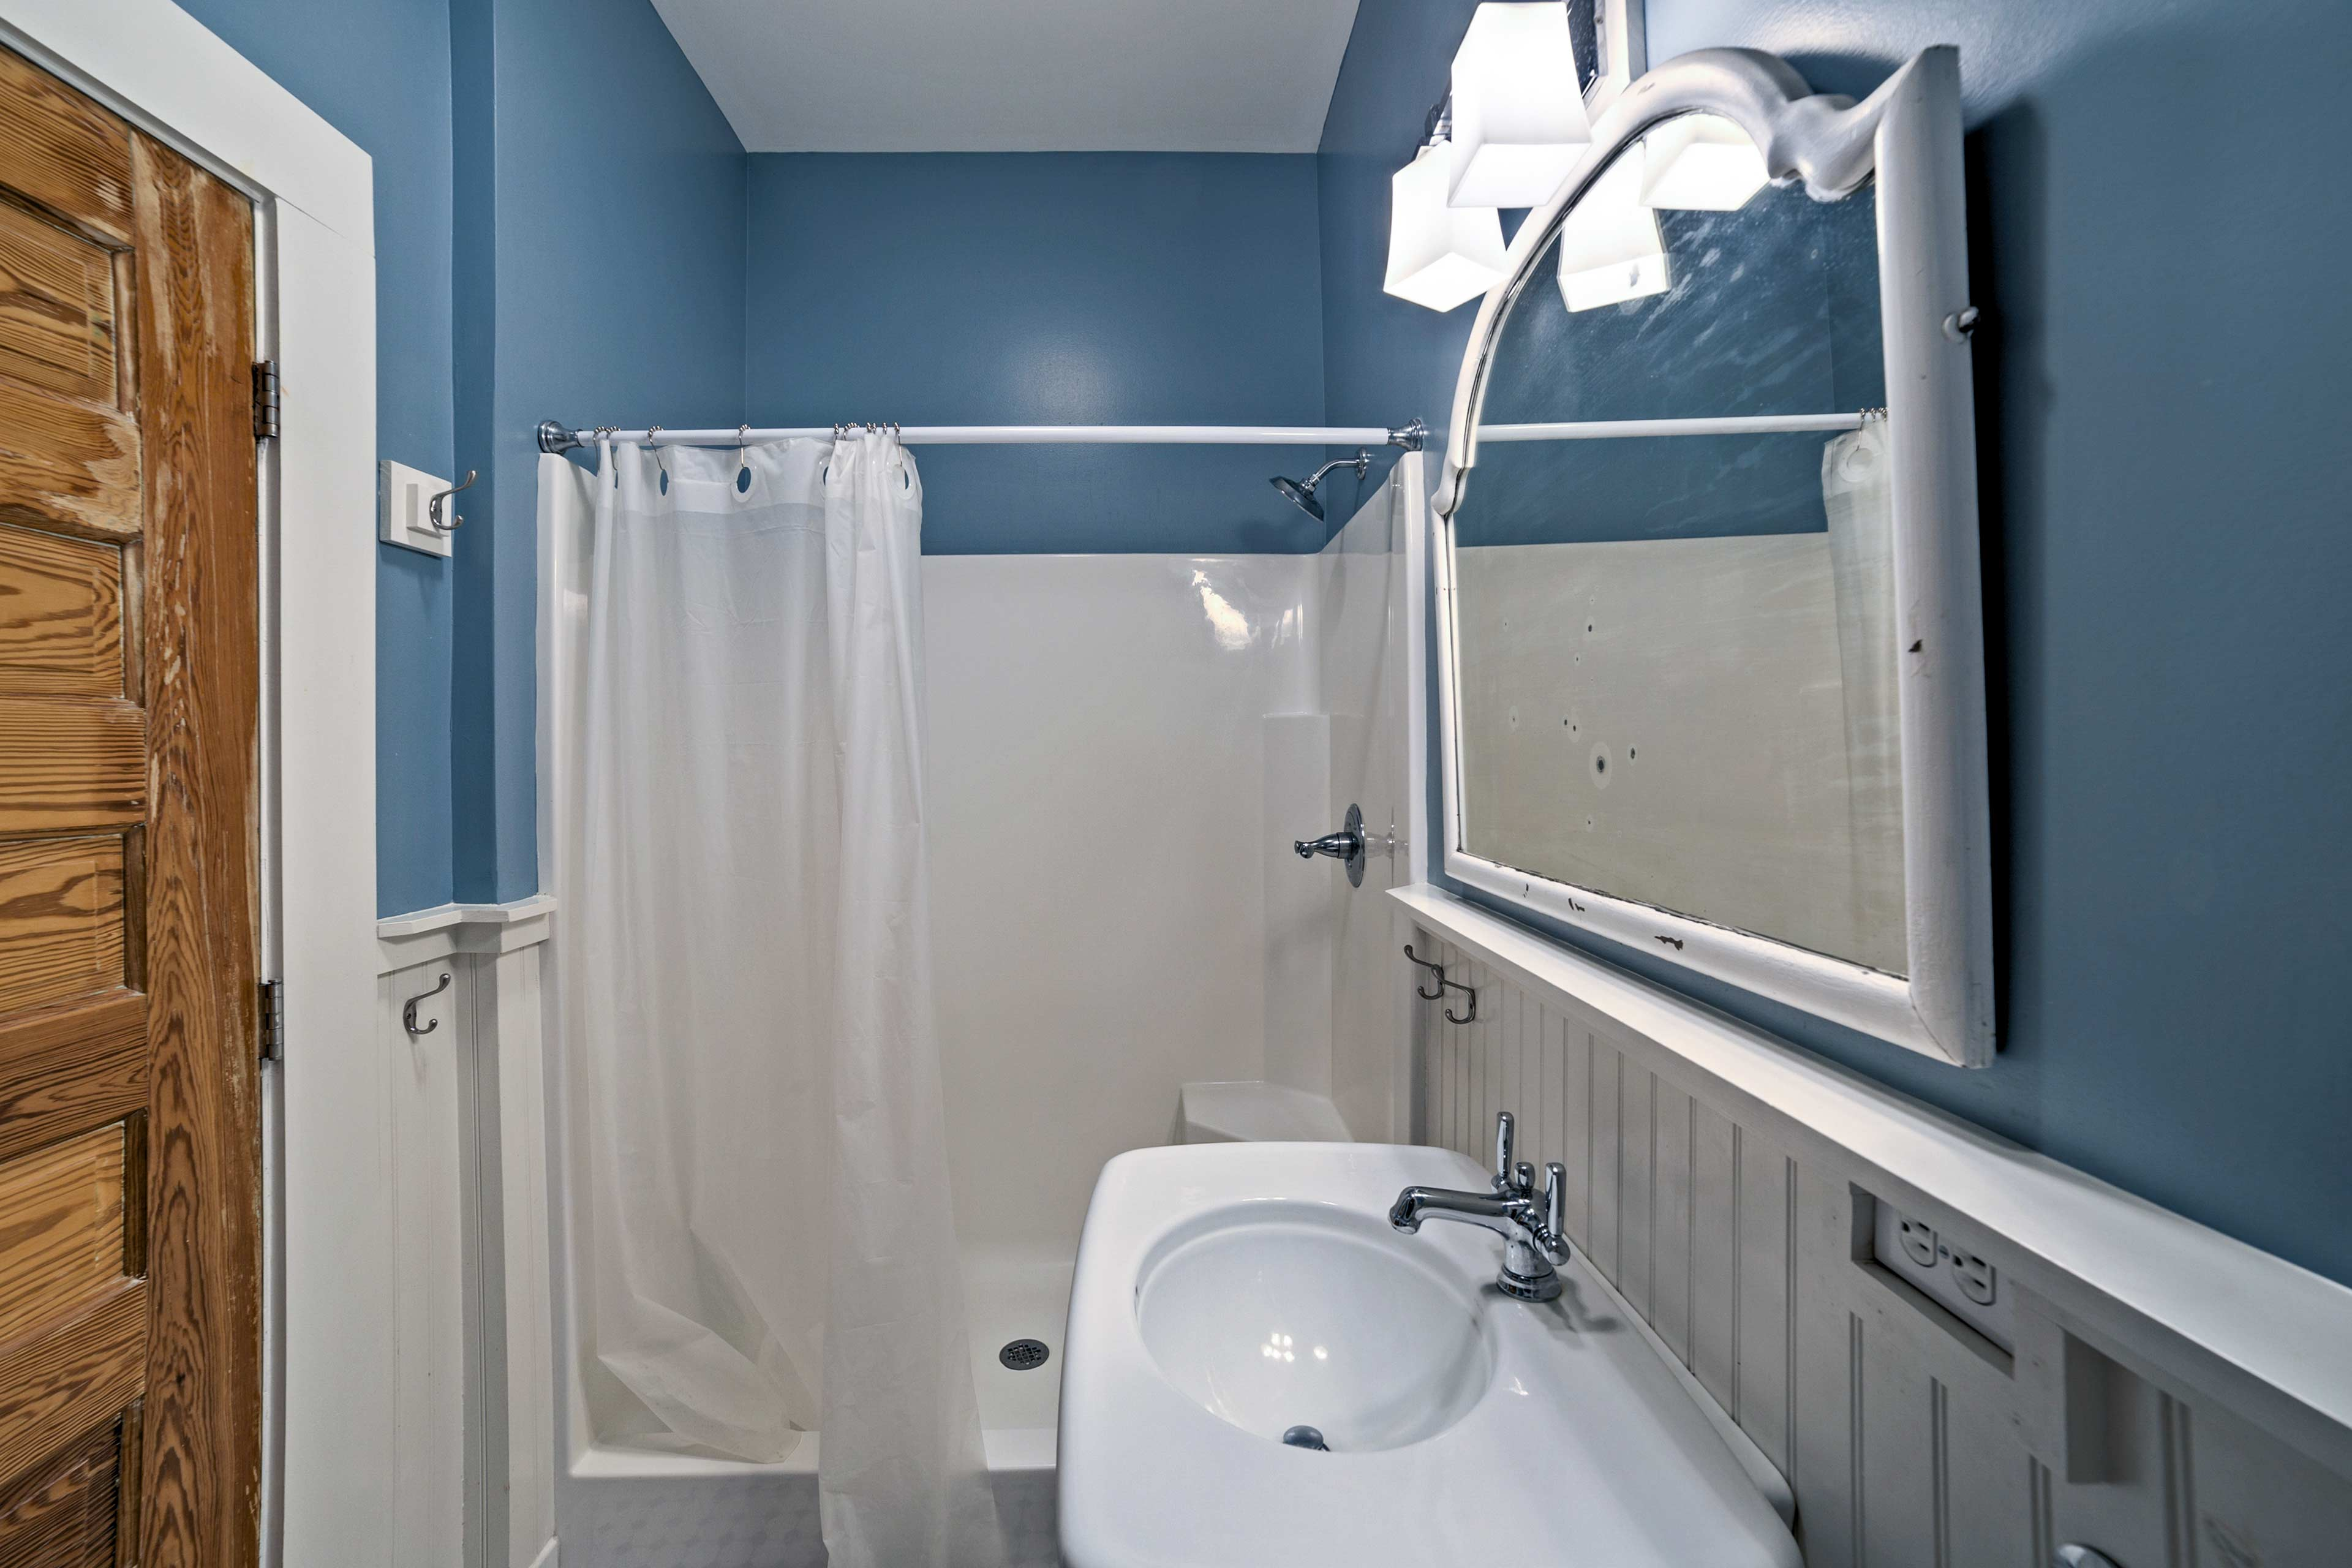 Relax with a shower or soak in the tub.